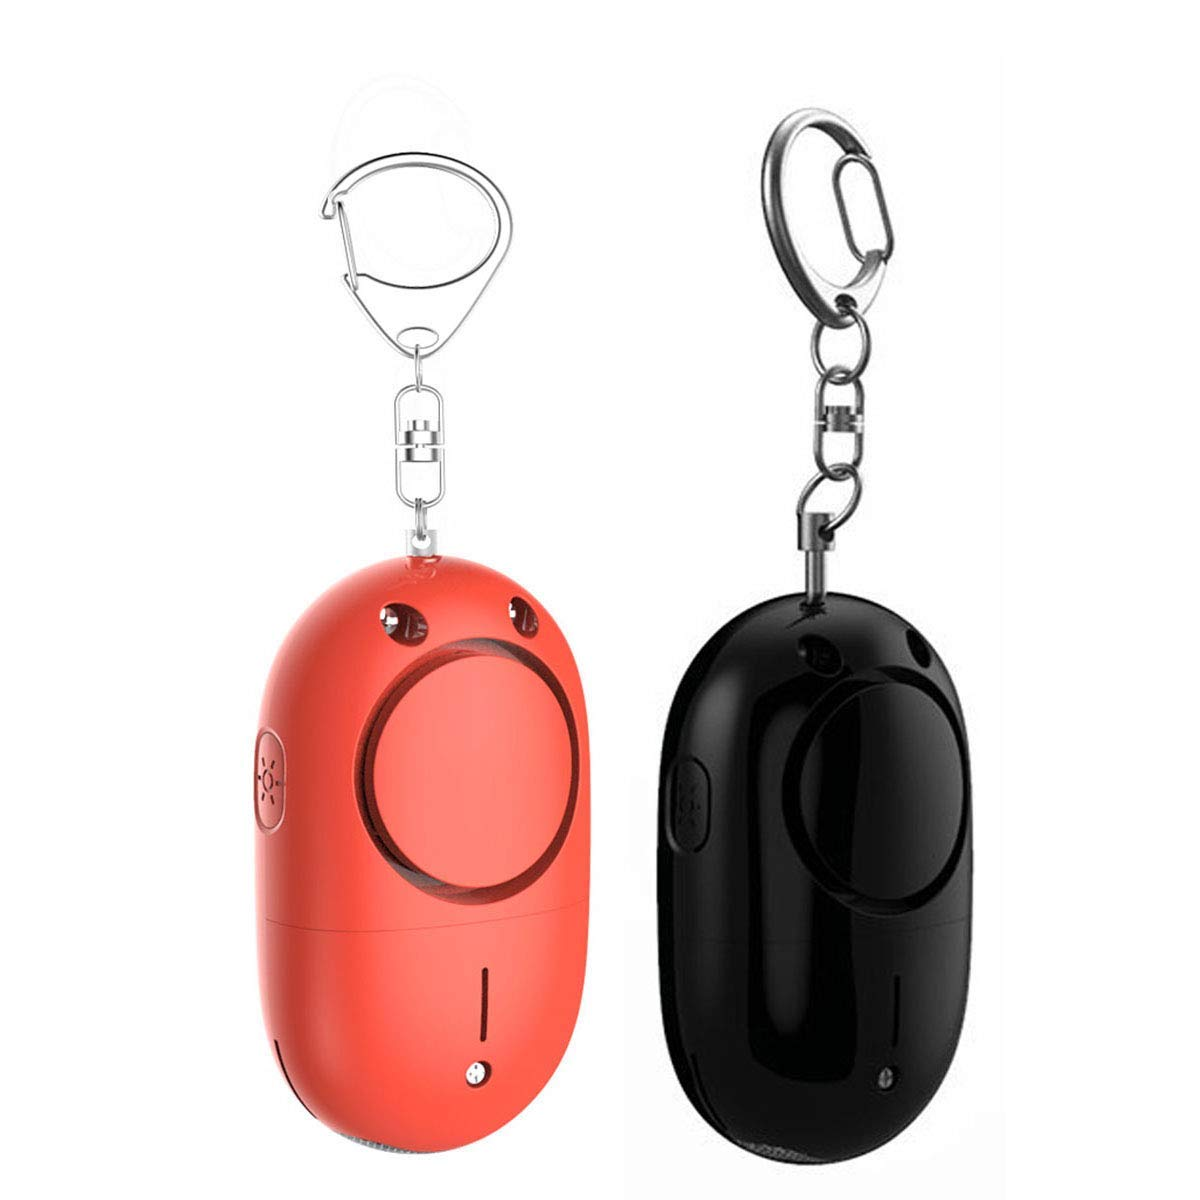 Accessories & Parts Consumer Electronics Devoted Newest Anti-rape Device Alarm Loud Alert Attack Panic Safety Personal Security Keychain For Kids Women Self-defense Supplies